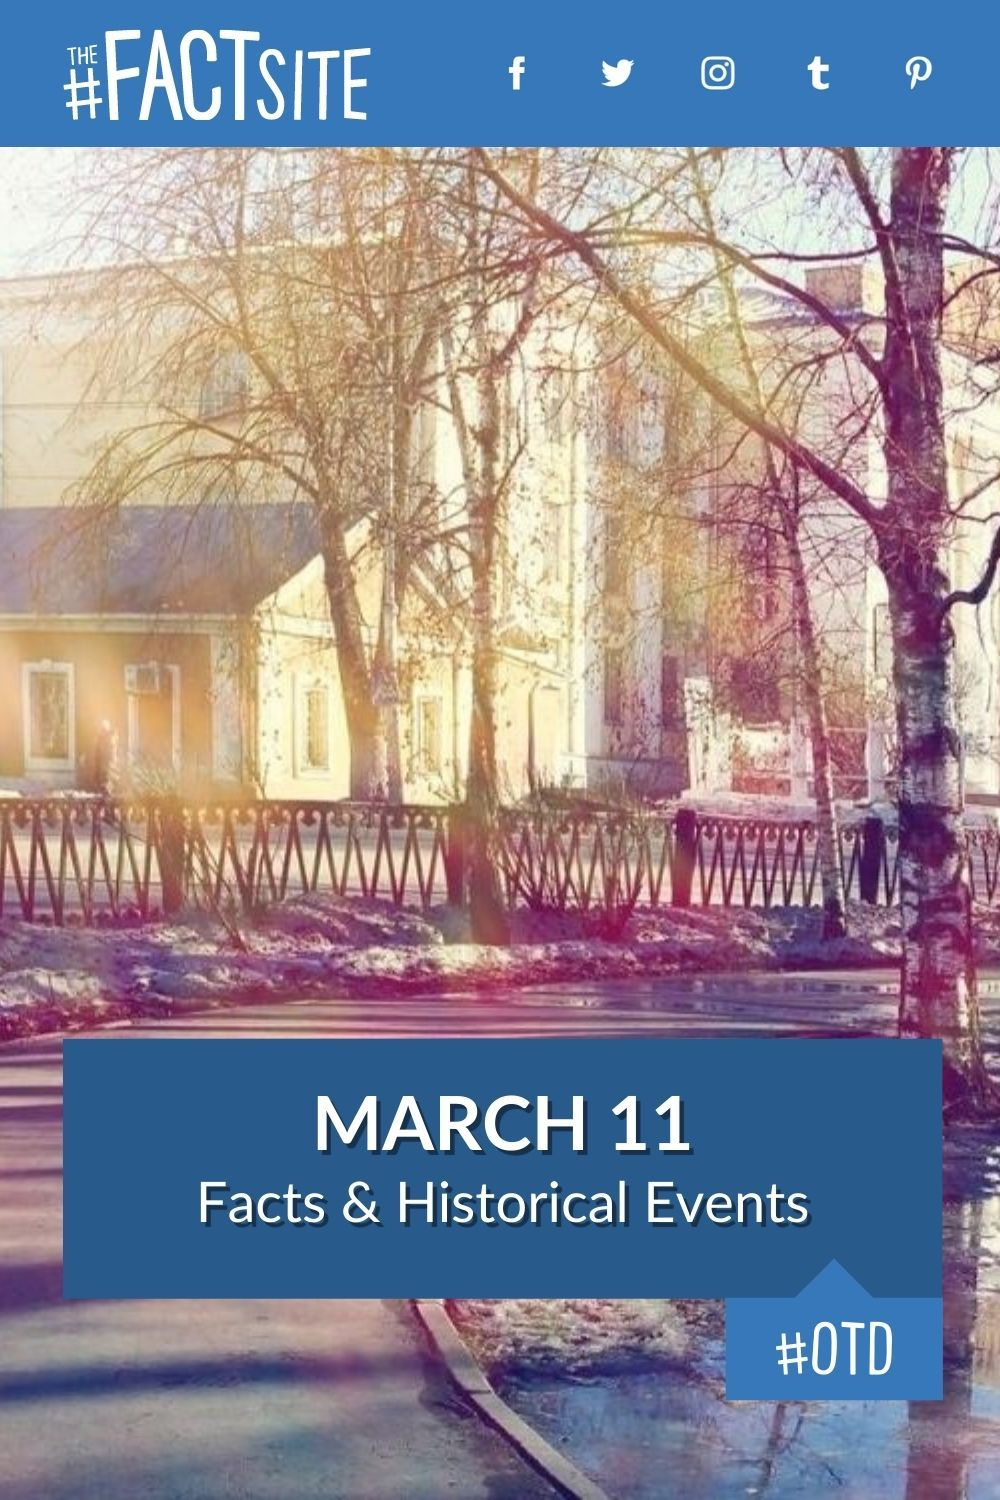 Facts & Historic Events That Happened on March 11